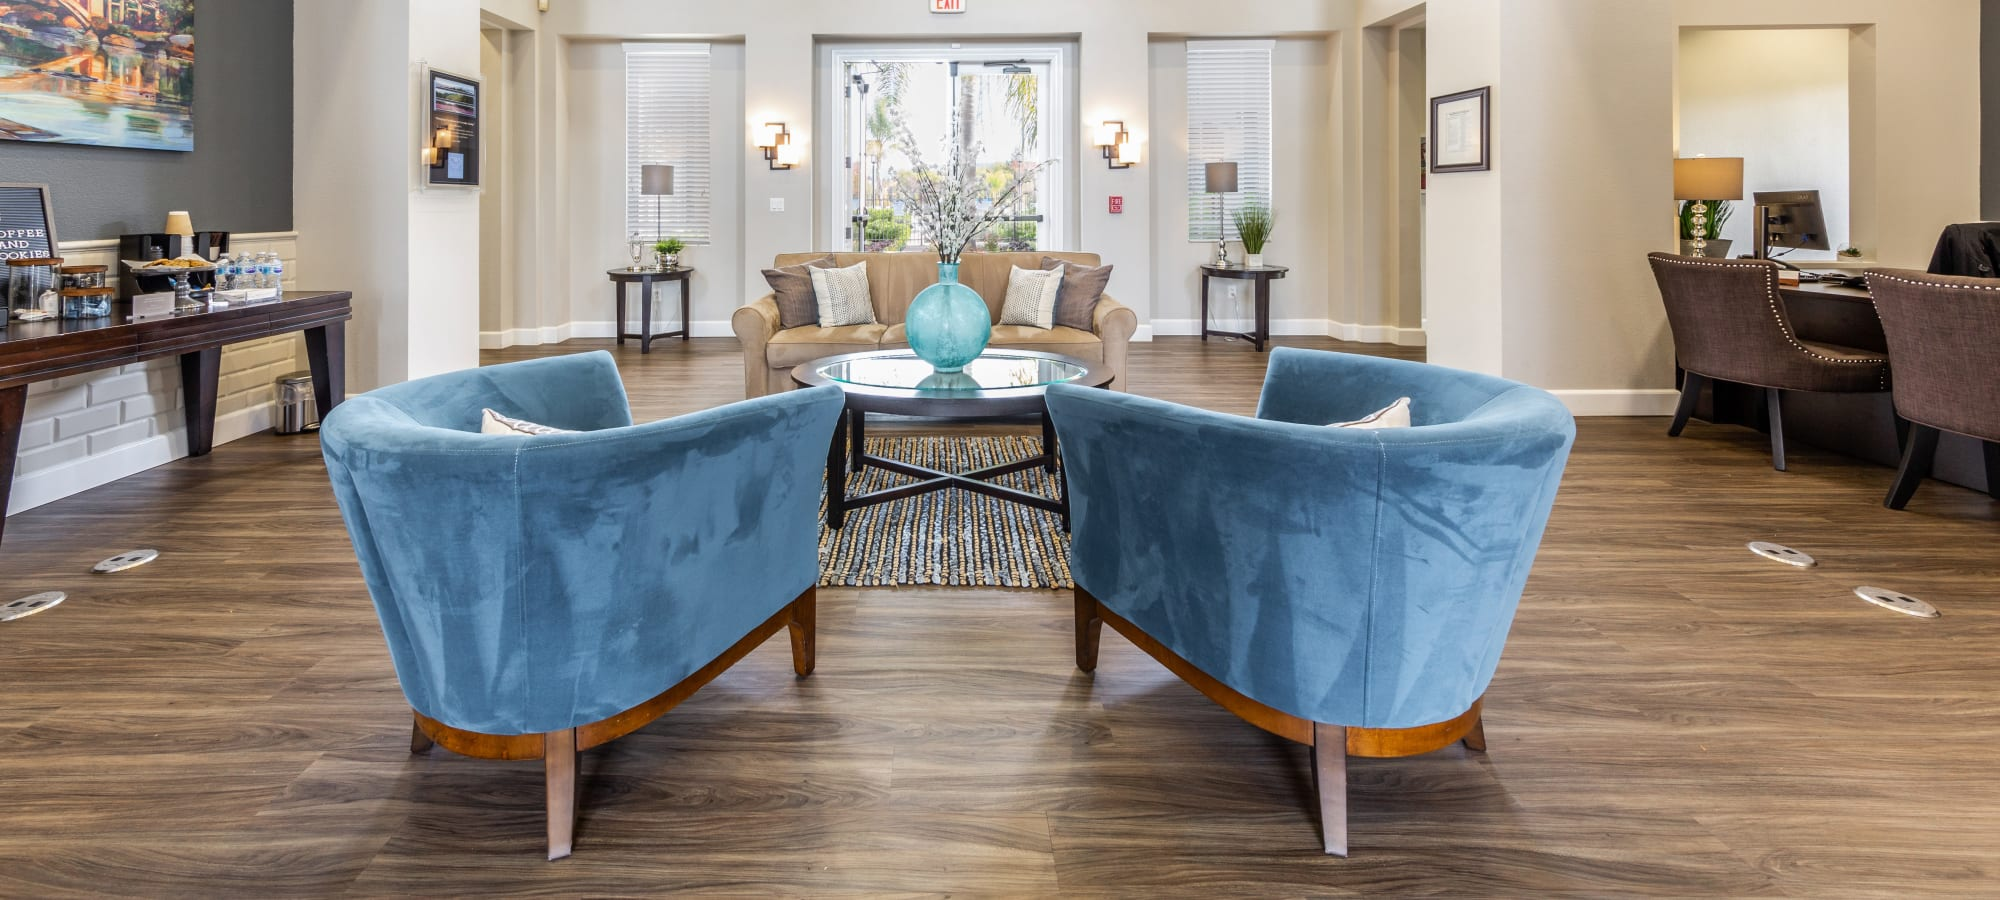 Amenities at The Fairmont at Willow Creek in Folsom, California